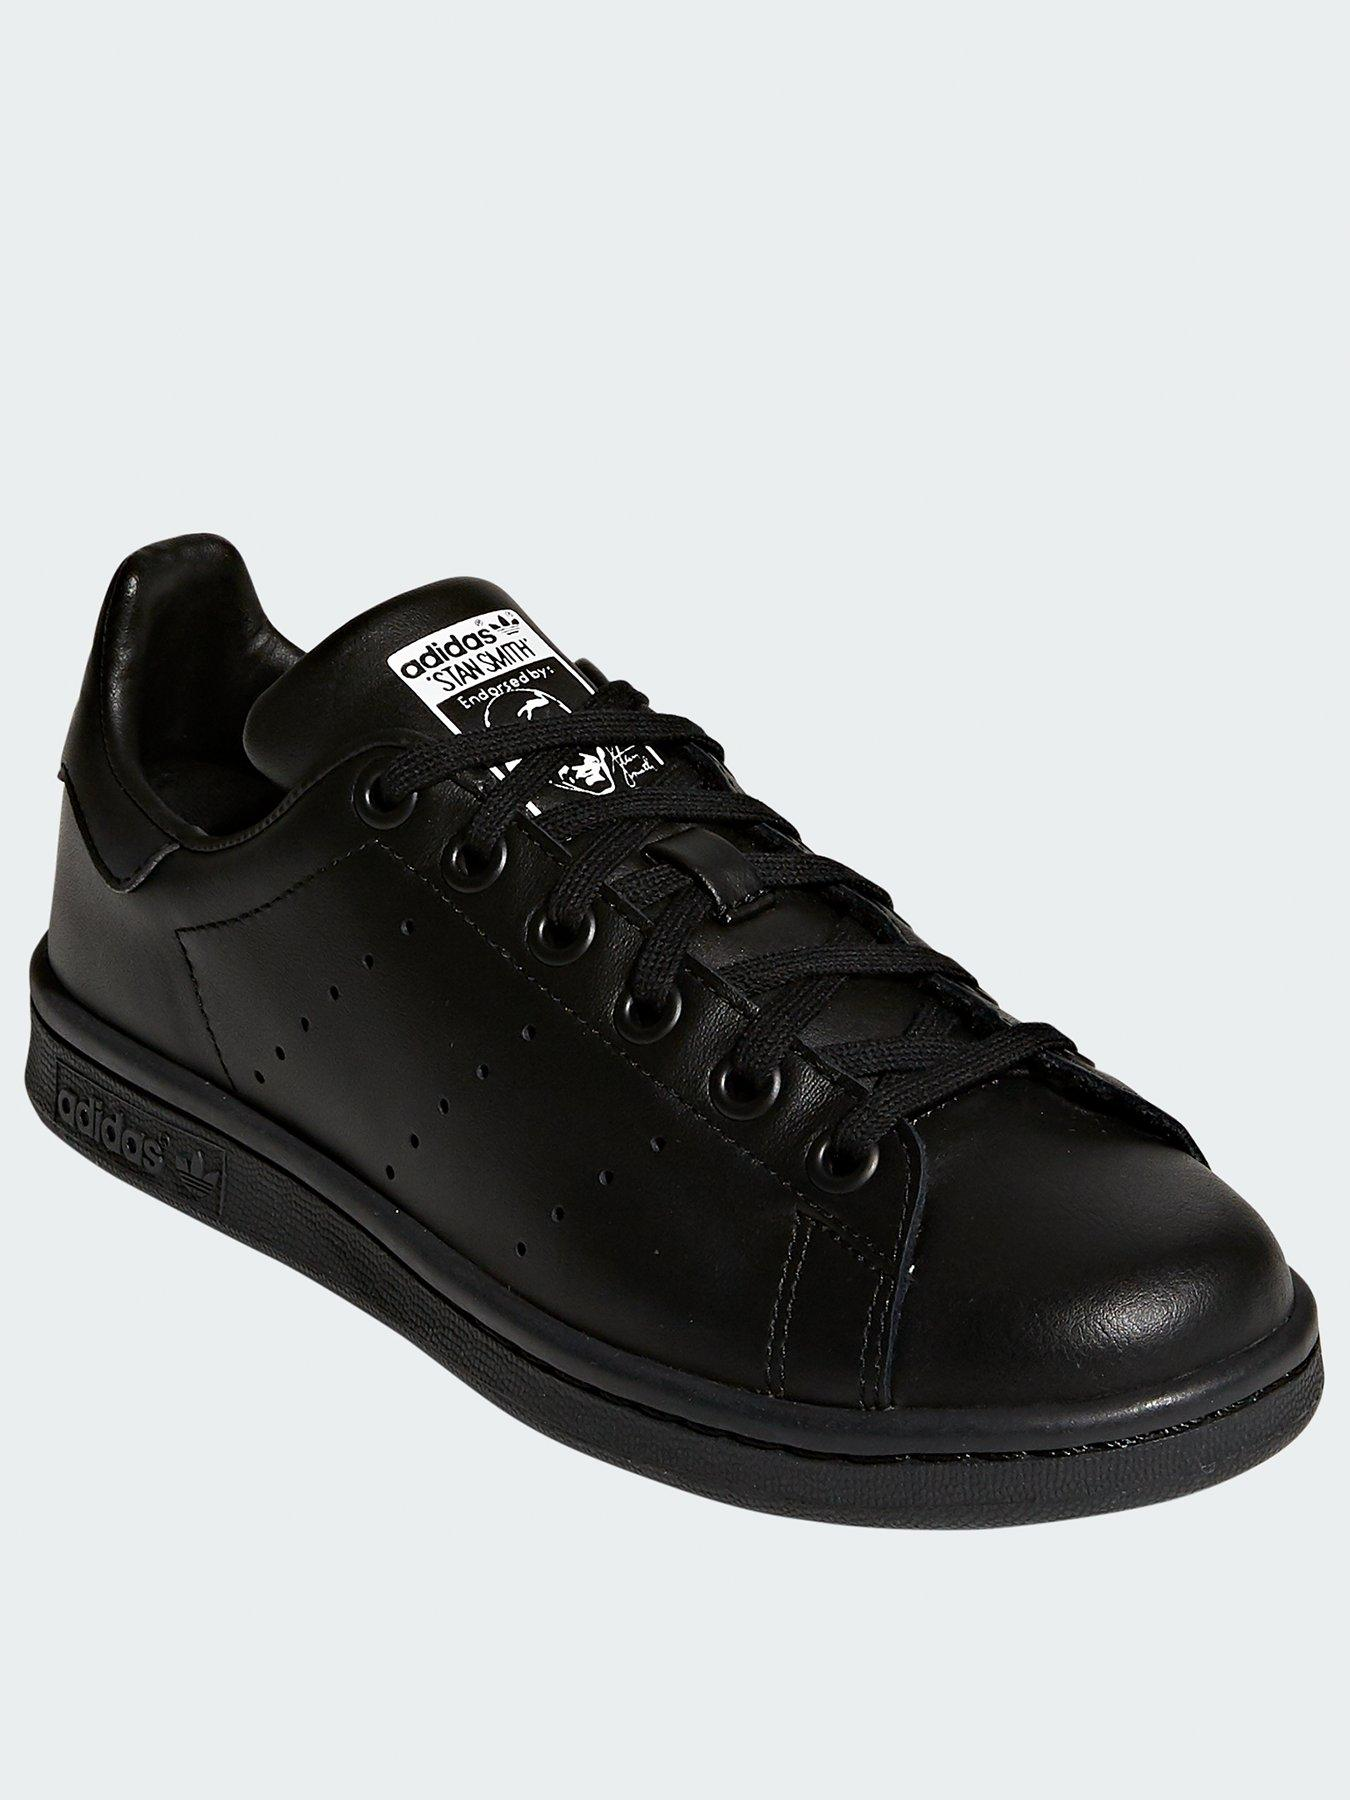 Details about New Mens Adidas Originals Superstar Trainers Black Grey Camouflage UK Size 9